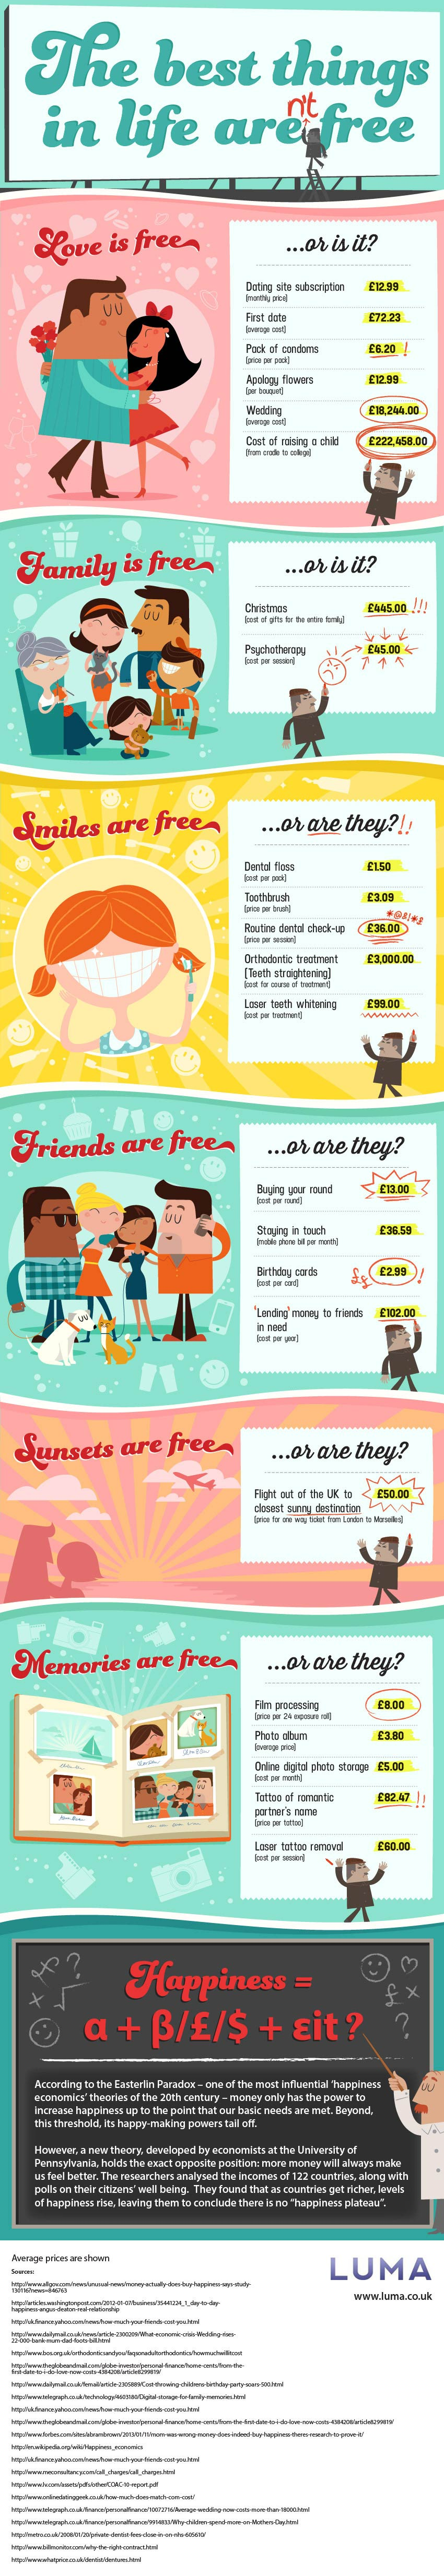 The_Best_Things_in_Life_Arent_Free-infographic